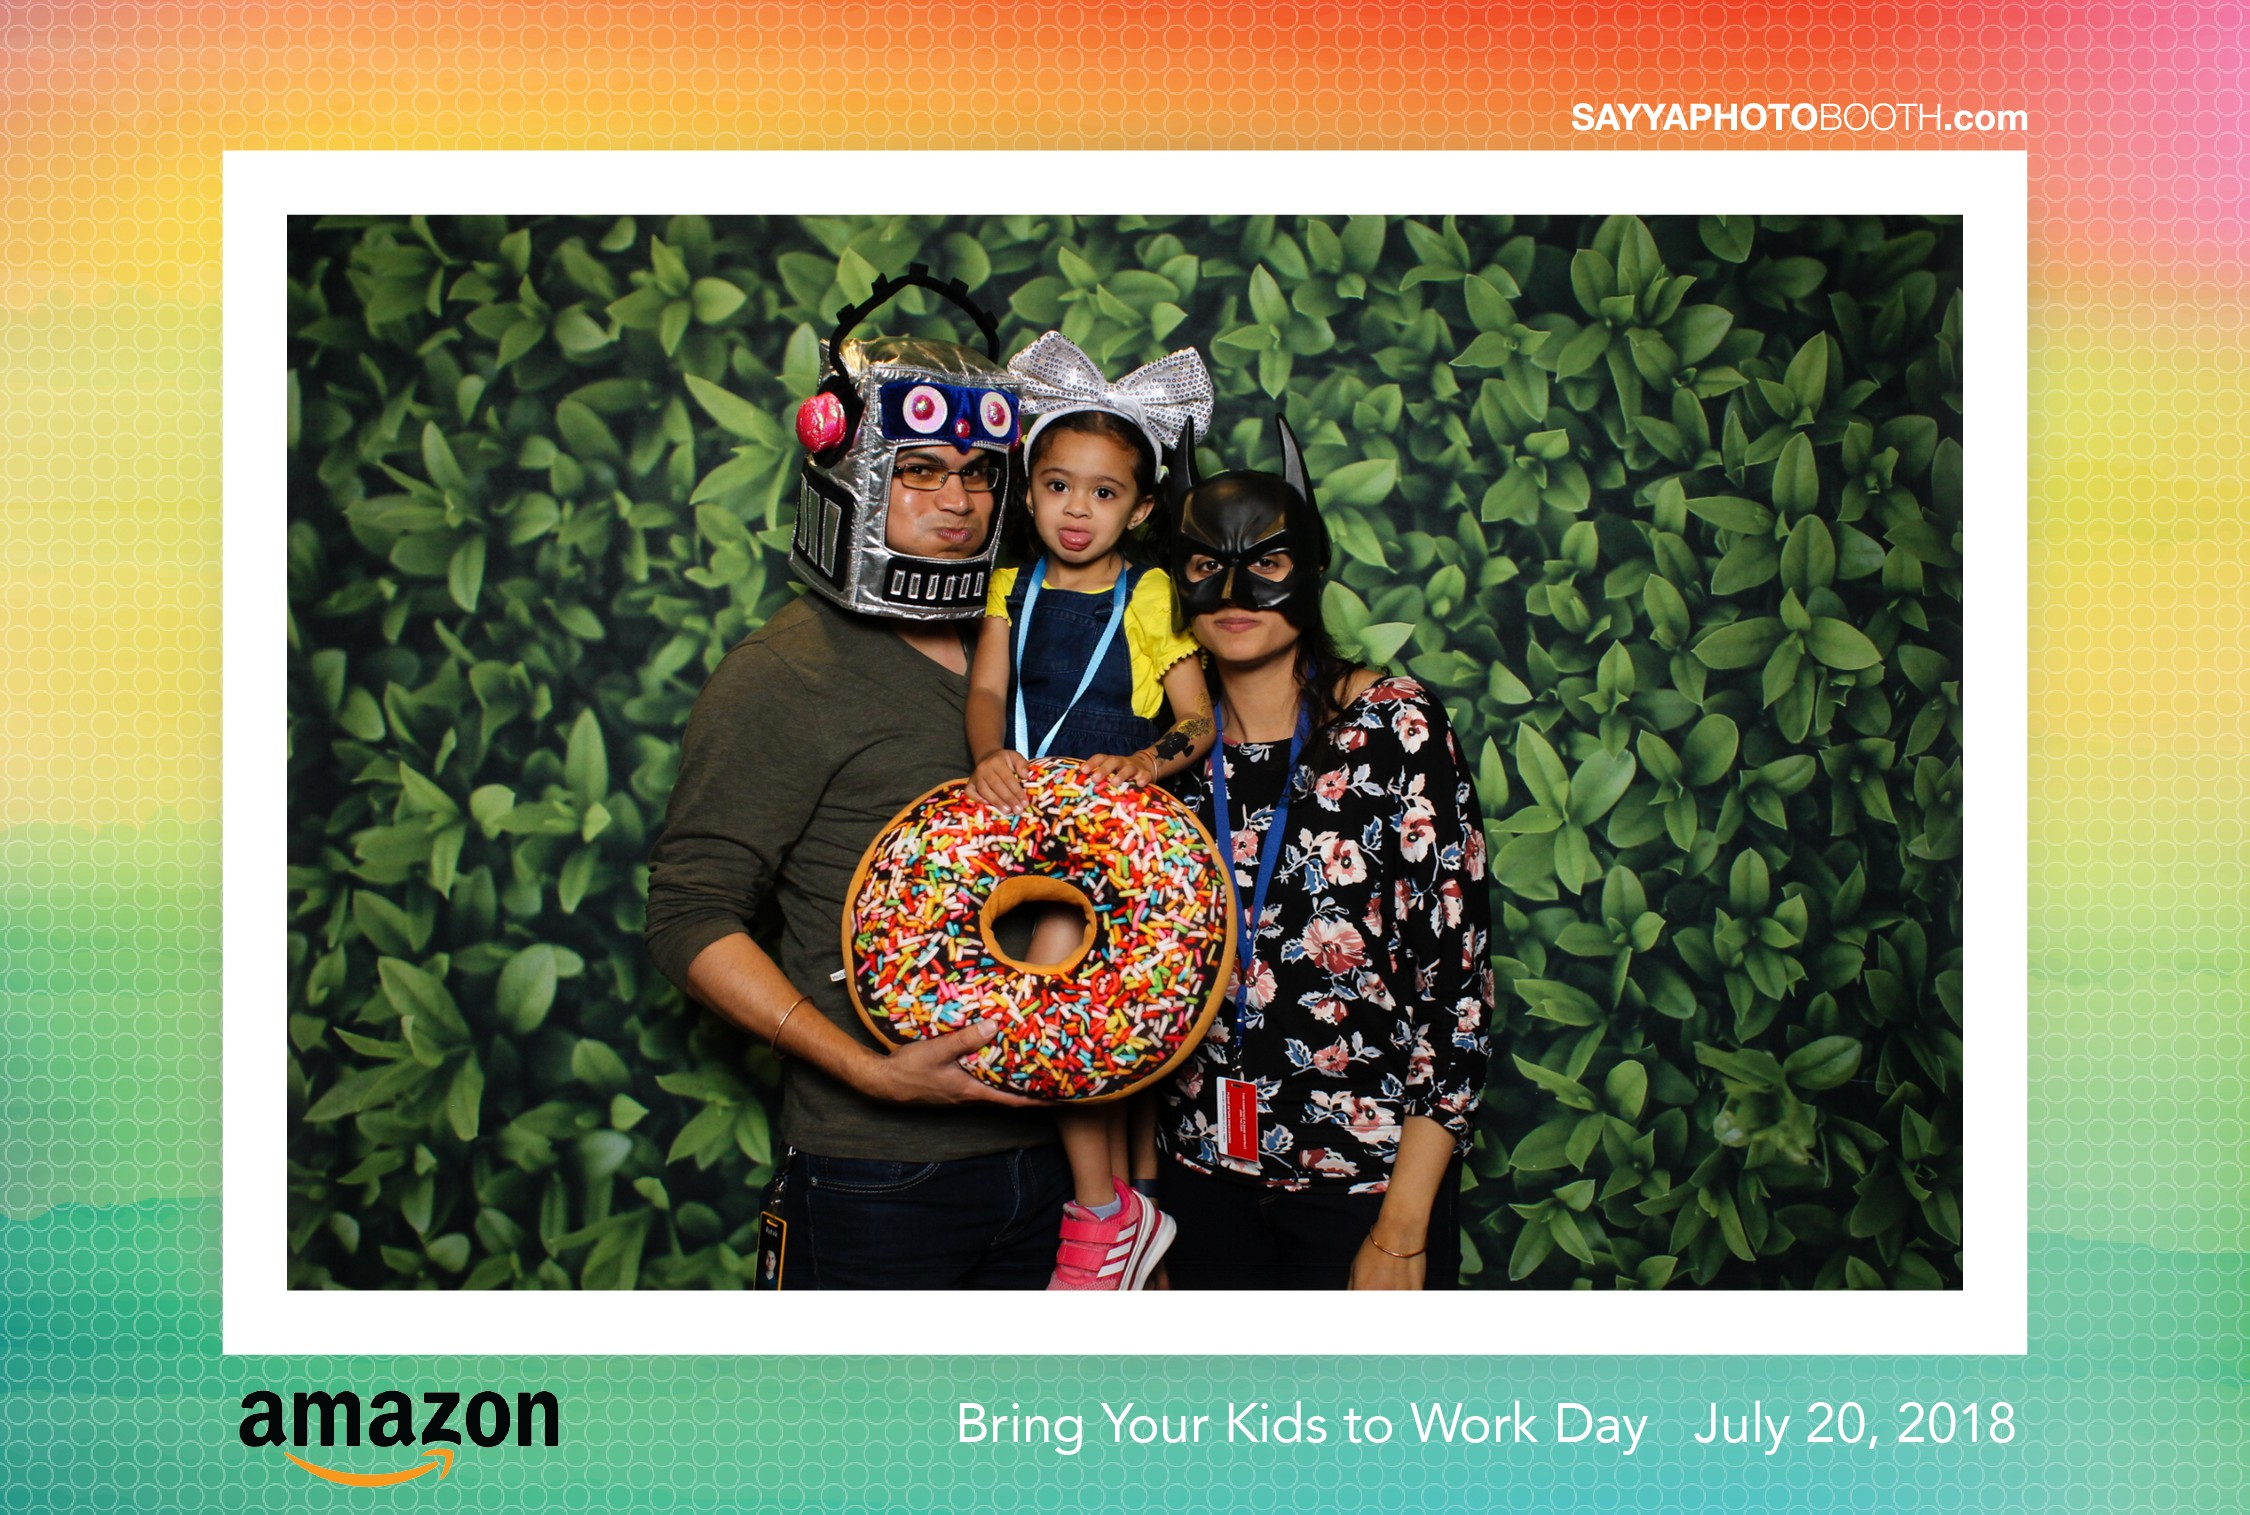 Bring Your Kids to Work Day - Amazon